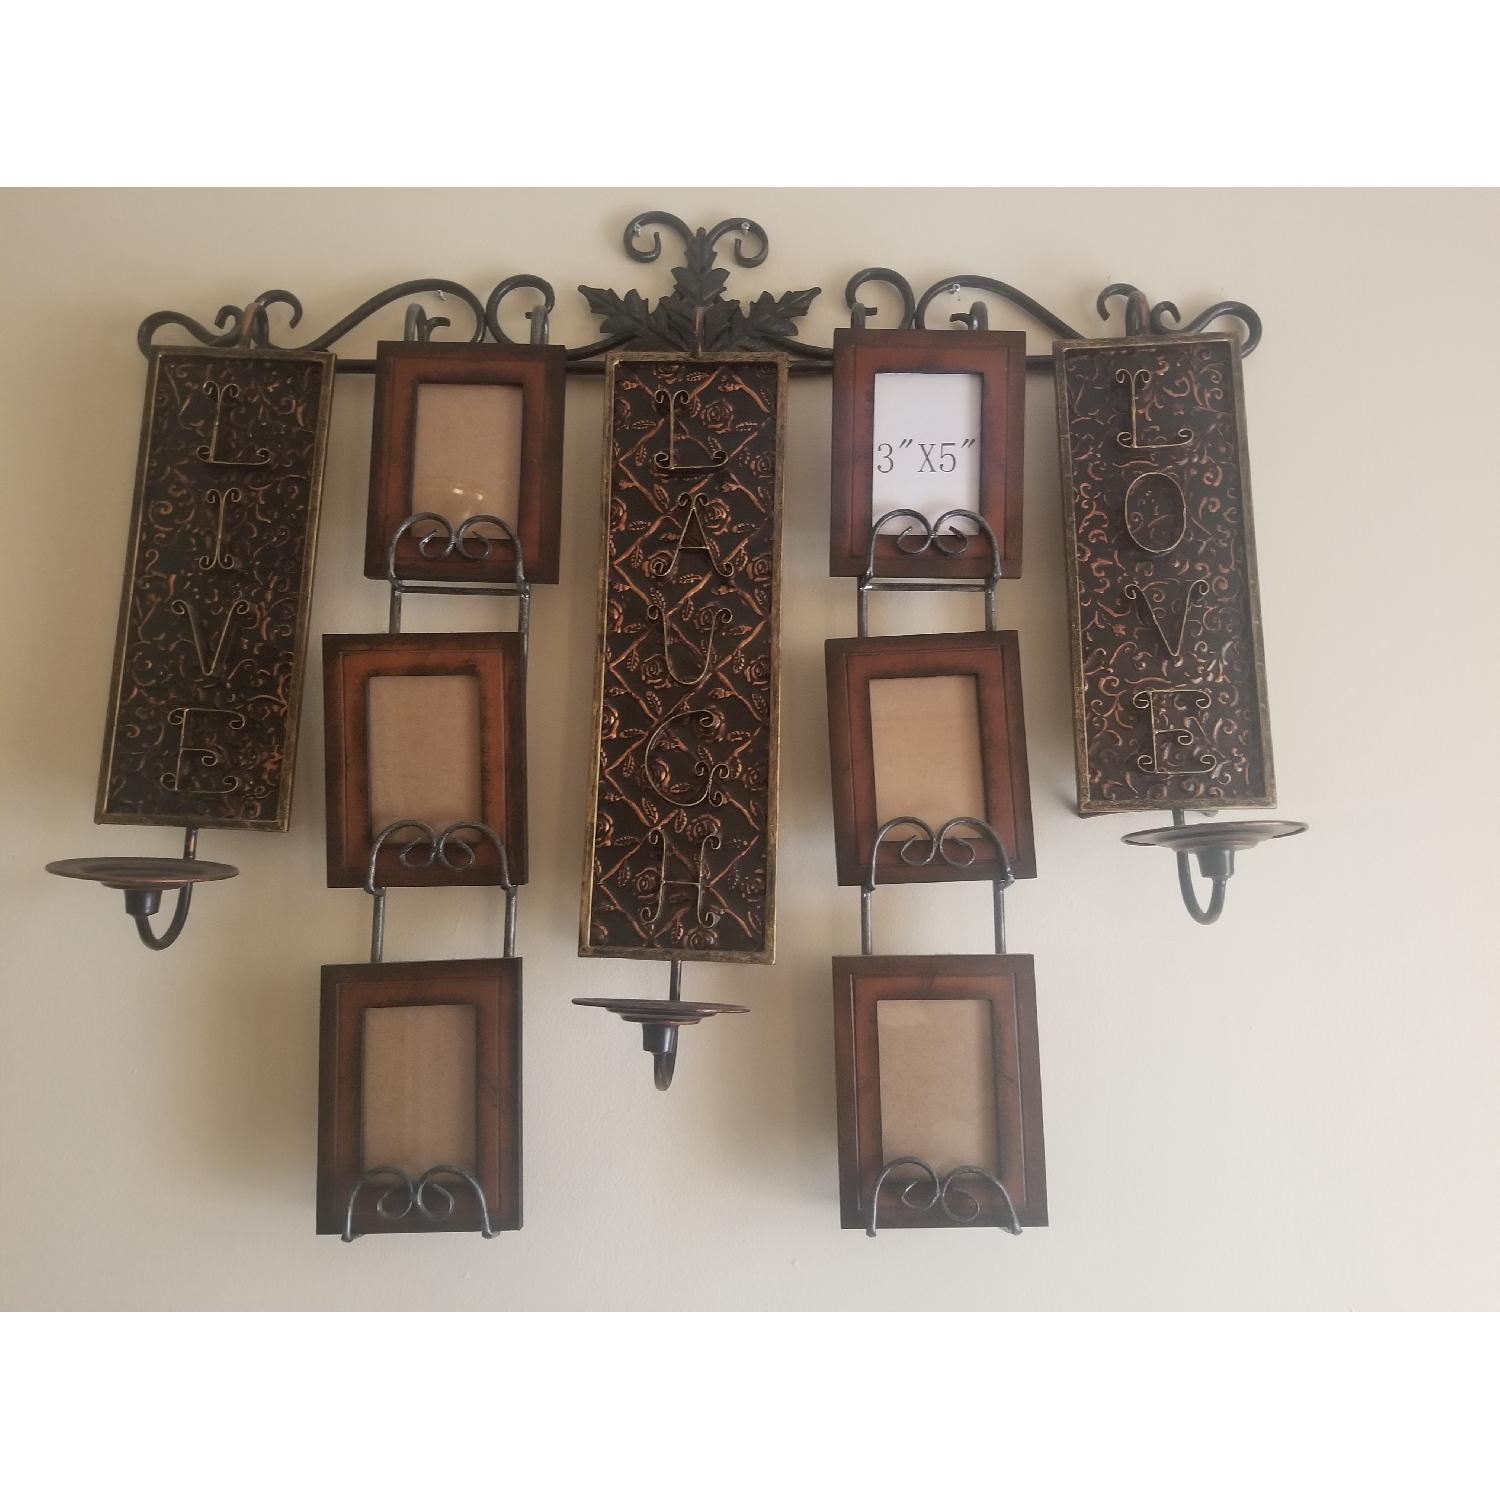 Wall Decor Pictures Frame - image-1